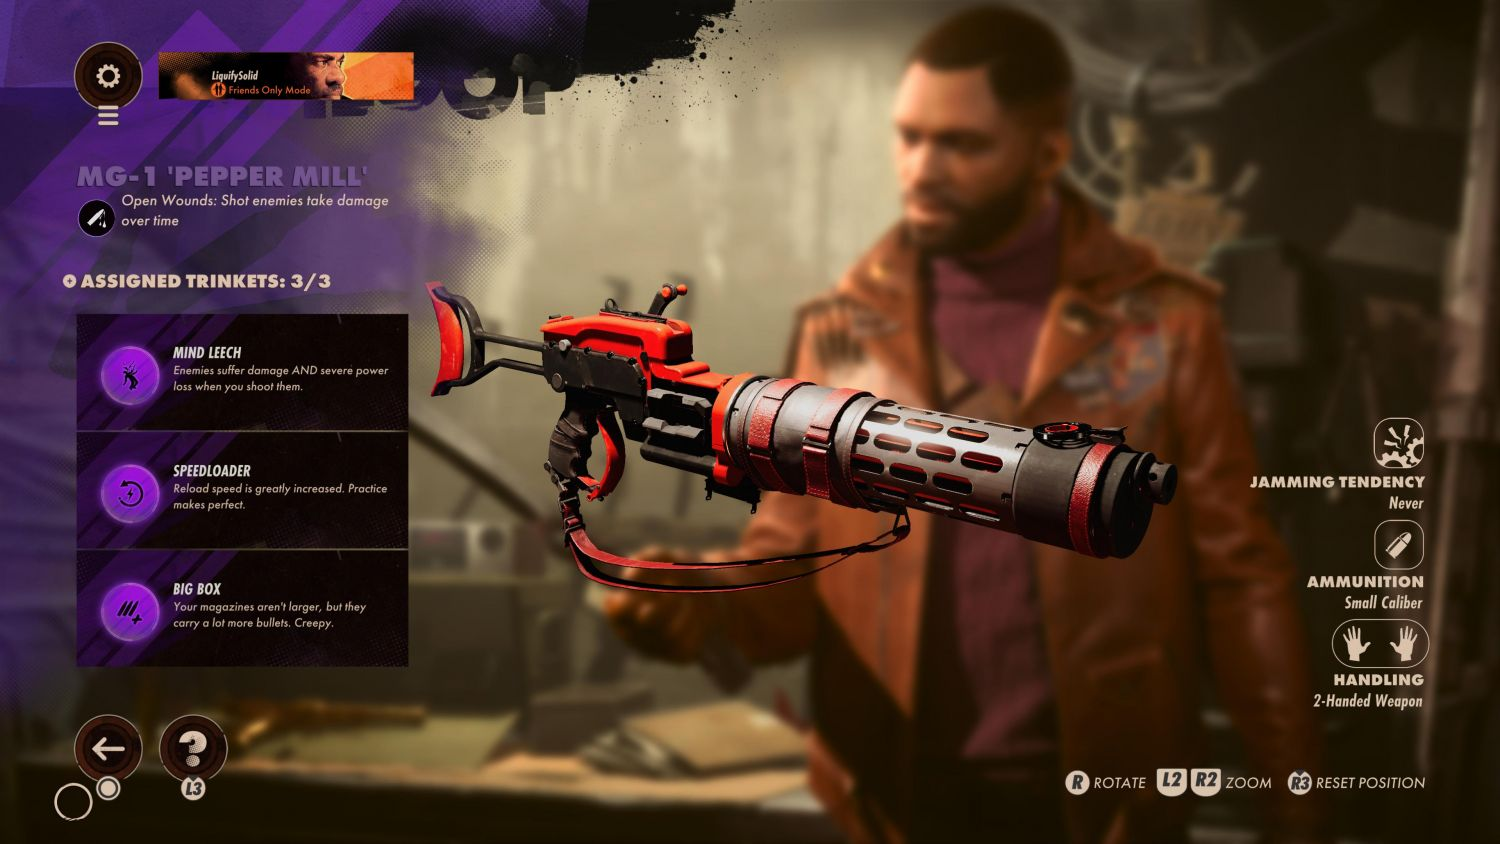 The Best Weapons And Slabs In Deathloop You Need To Know - The MG-1 Pepper Mill